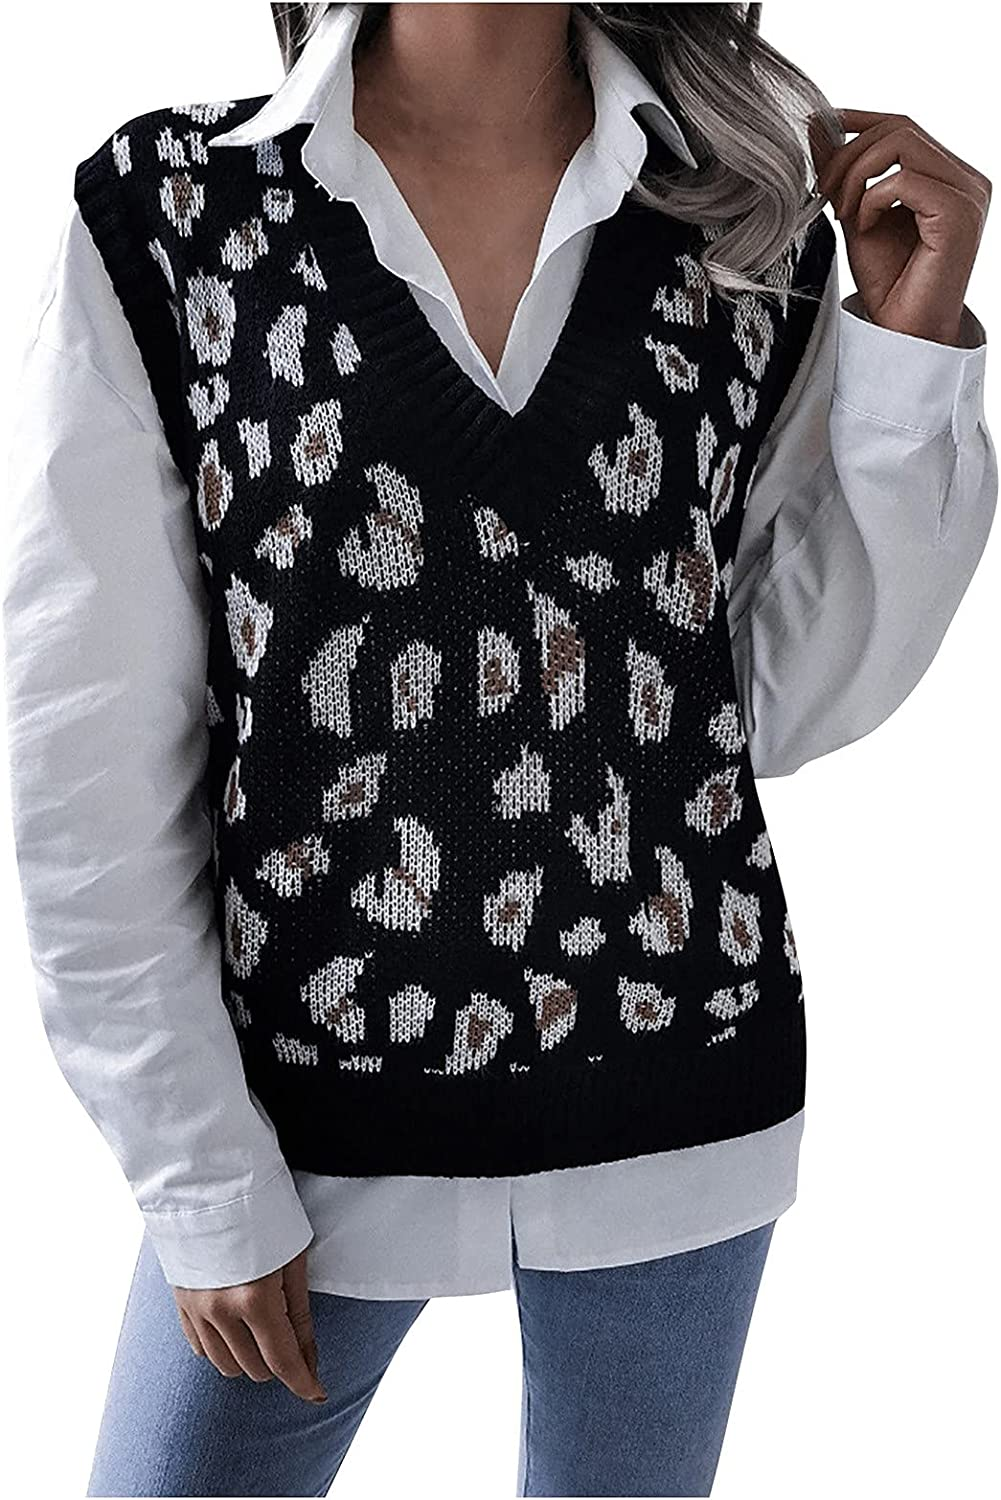 Sweater Vest For Women's Casual College Style V-neck Knit Loose Fashion Plaid Sweater